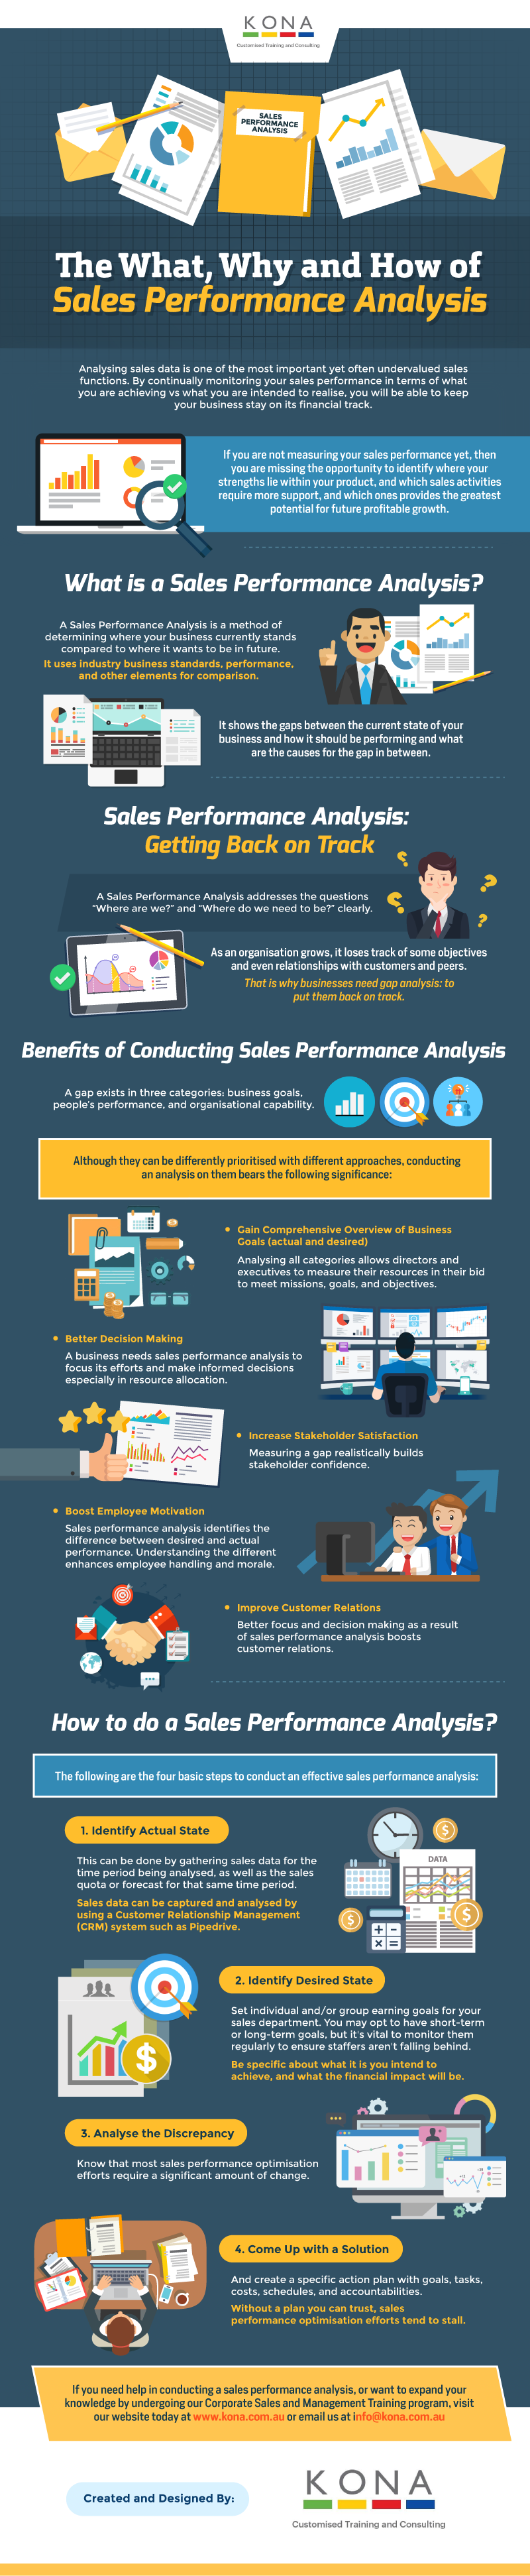 Everything You Need to Know About a Sales Performance Analysis [Infographic]